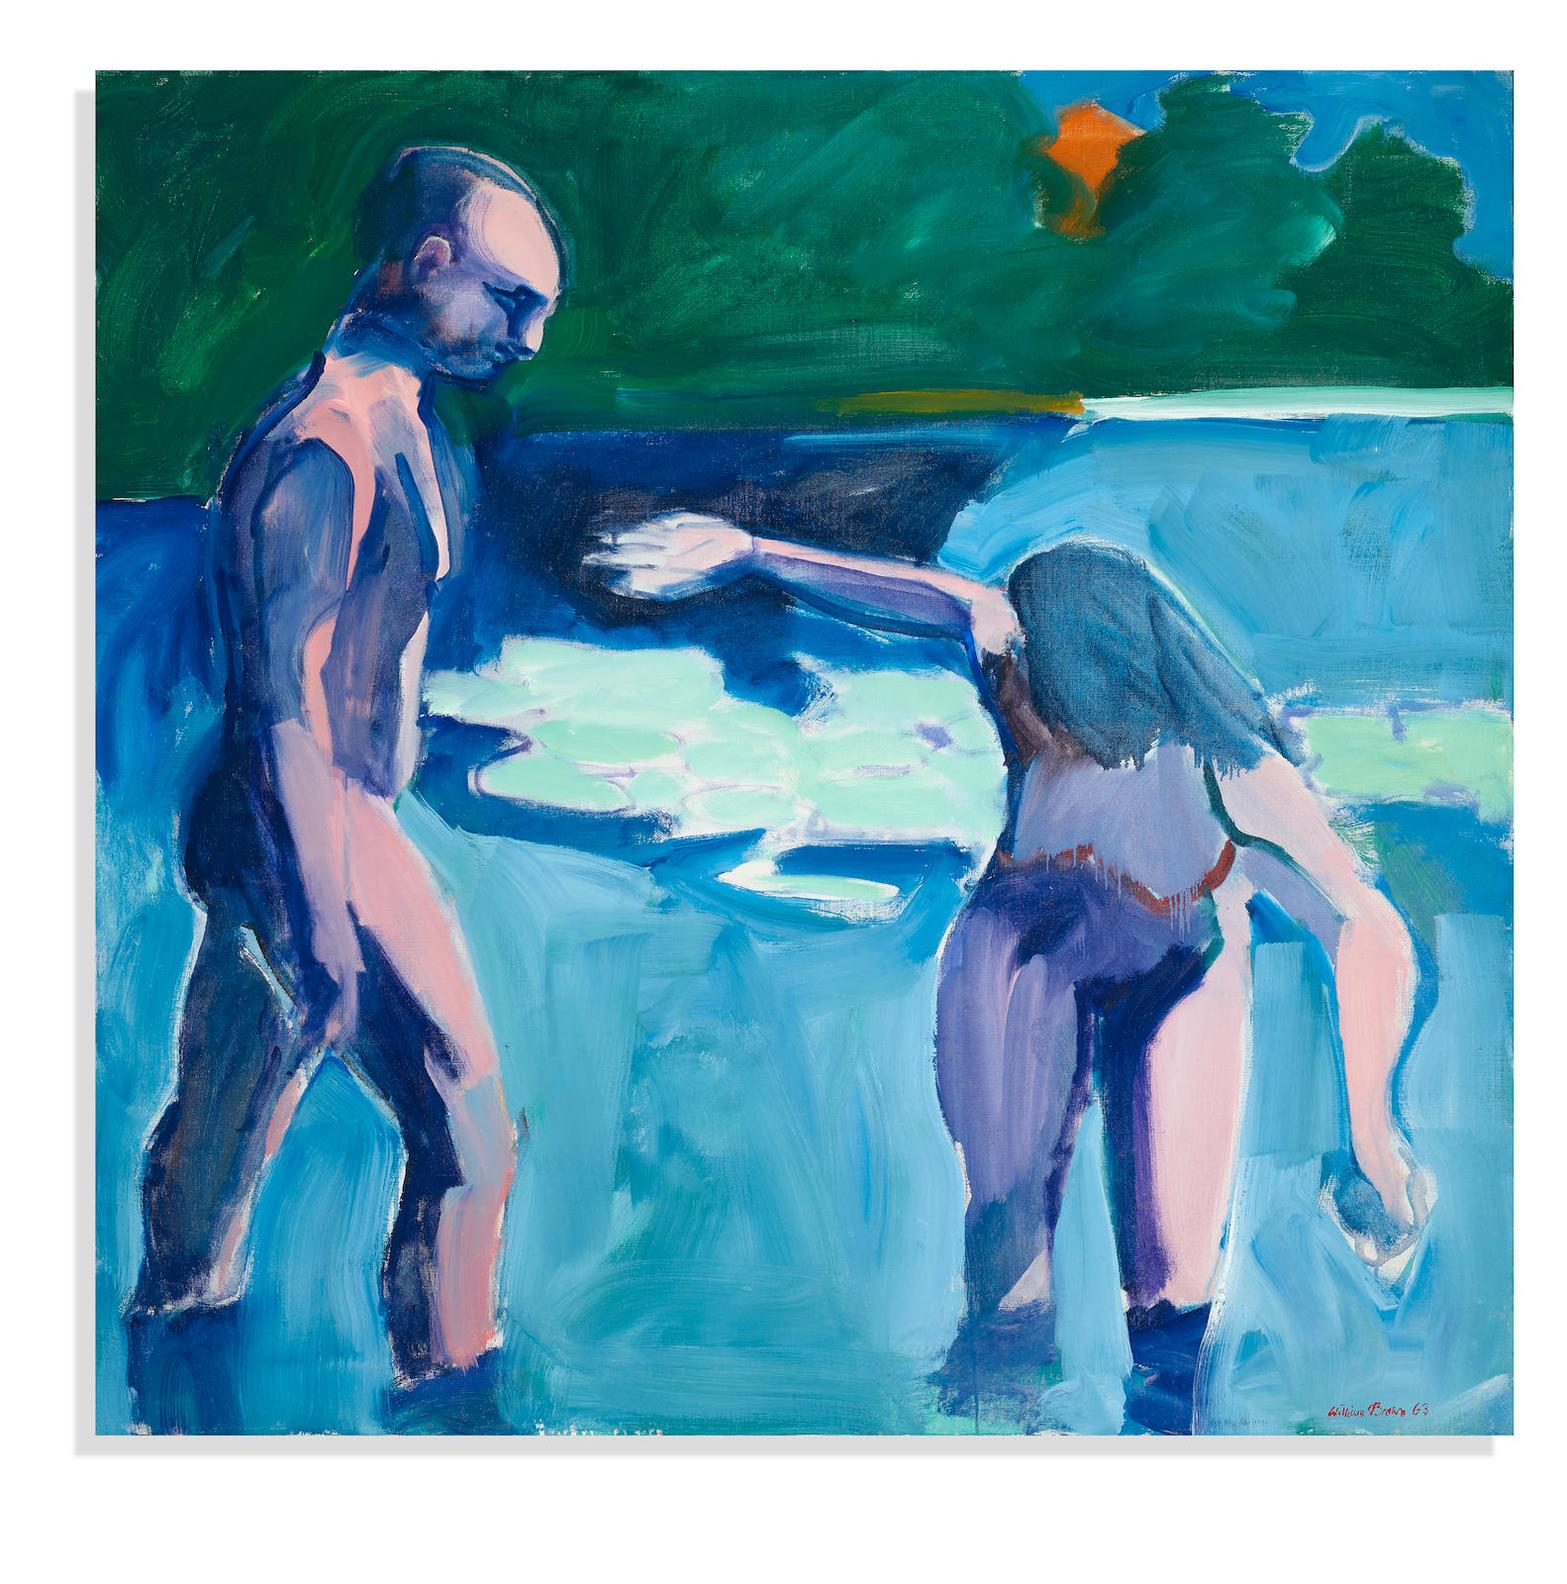 William Theophilus Brown-Bathers In Lily Pond-1963